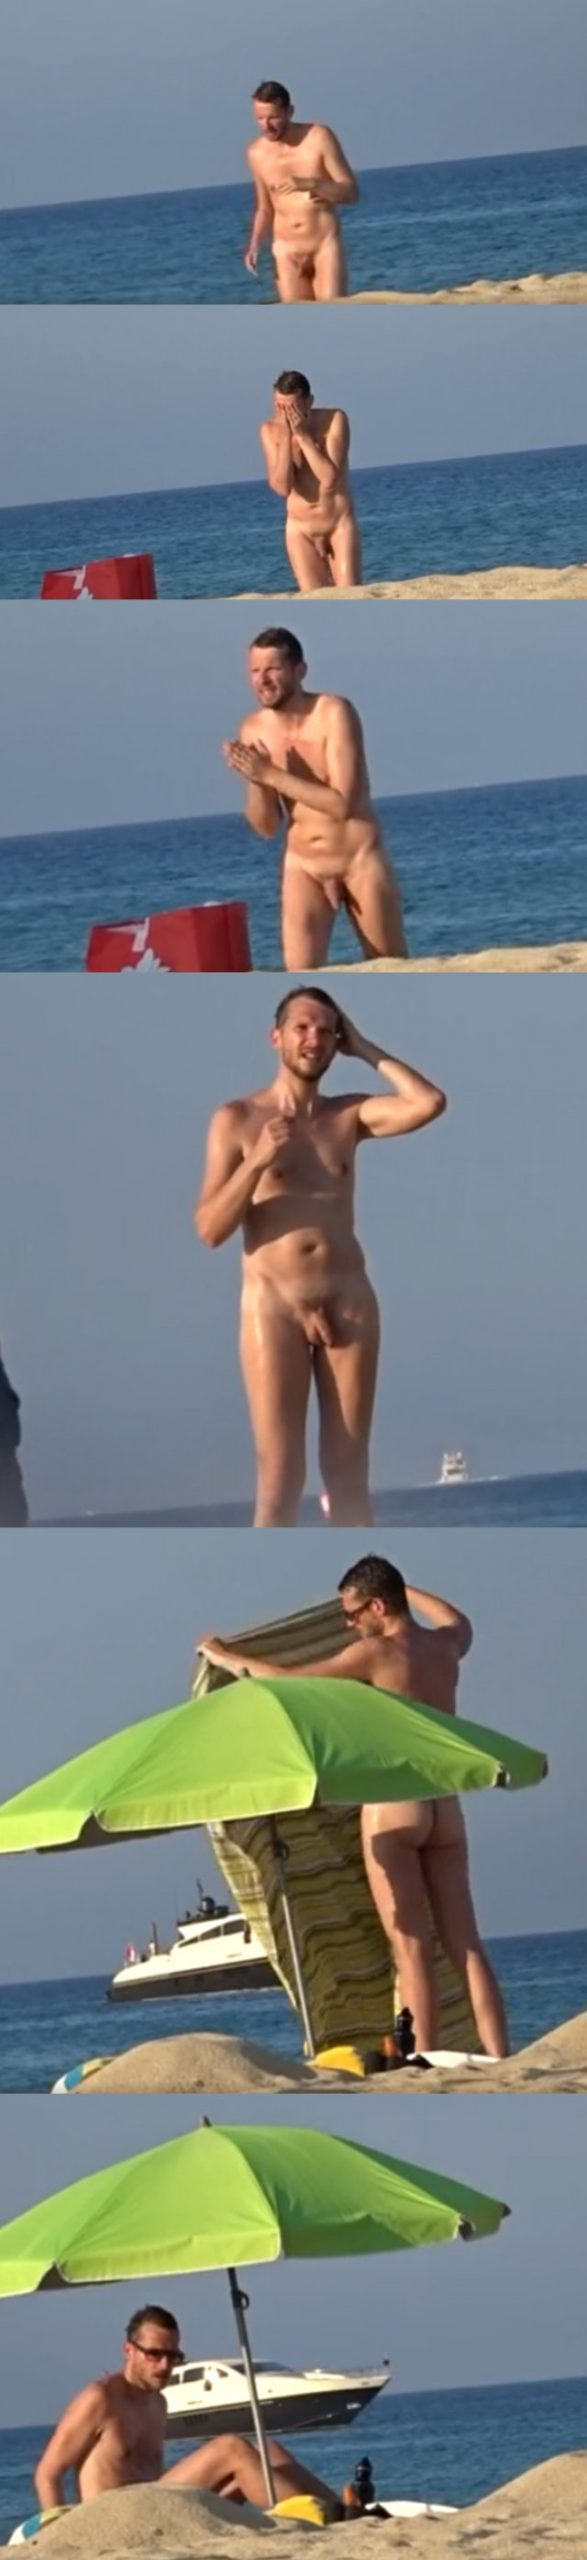 nudist man caught by spycam